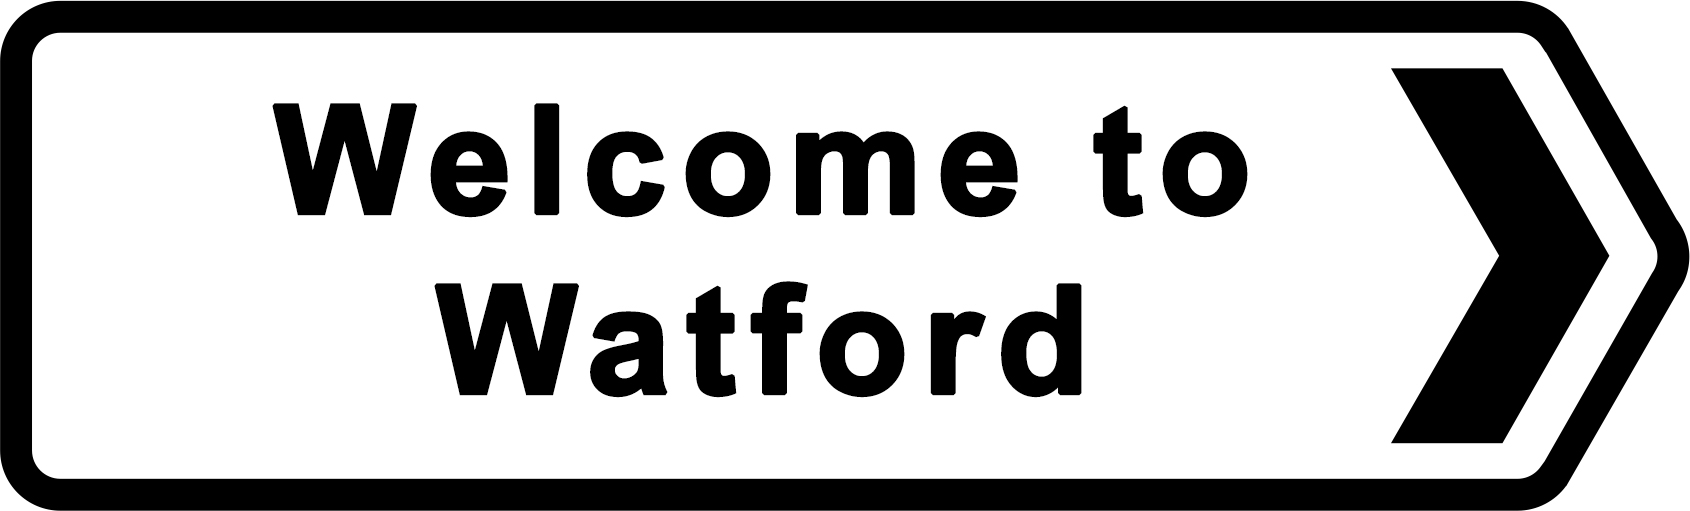 Coat of Arms of Watford Borough Council - Cheap Driving Schools Lessons in Watford, Hertfordshire, England